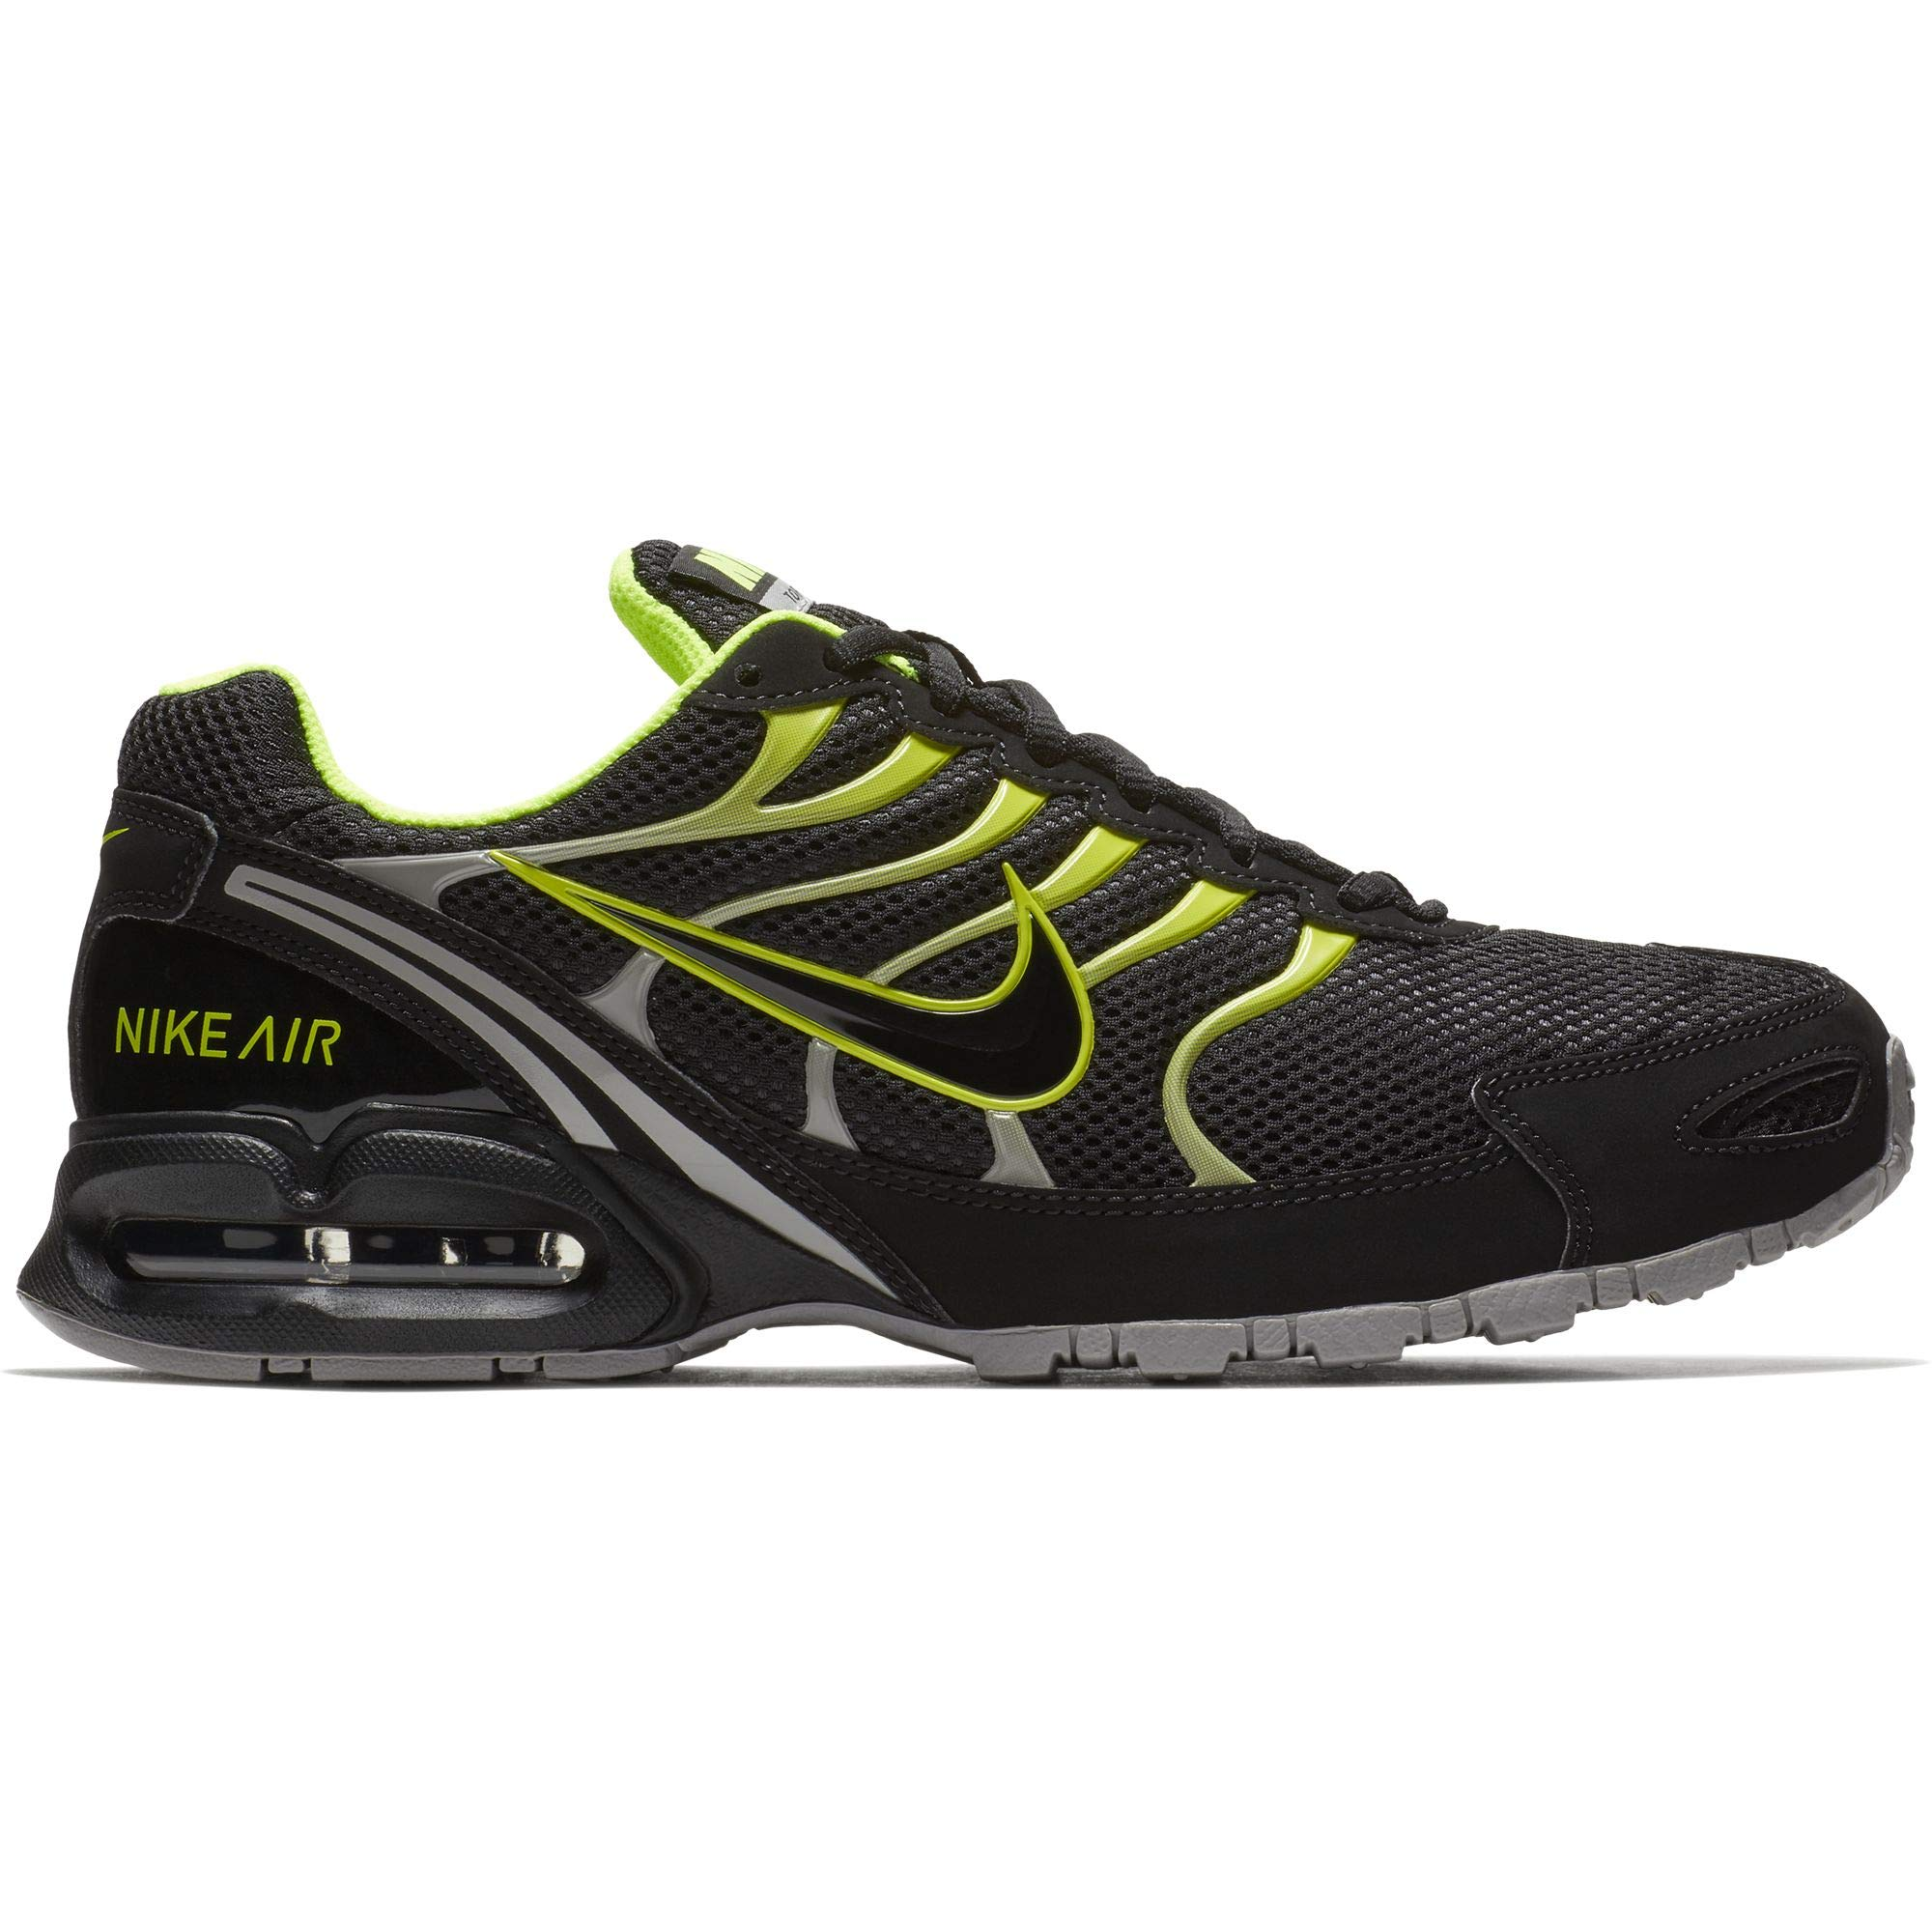 066a24632e7dc Galleon - Nike Men s Air Max Torch 4 Running Shoe Black Volt Atmosphere Grey  Size 9.5 M US